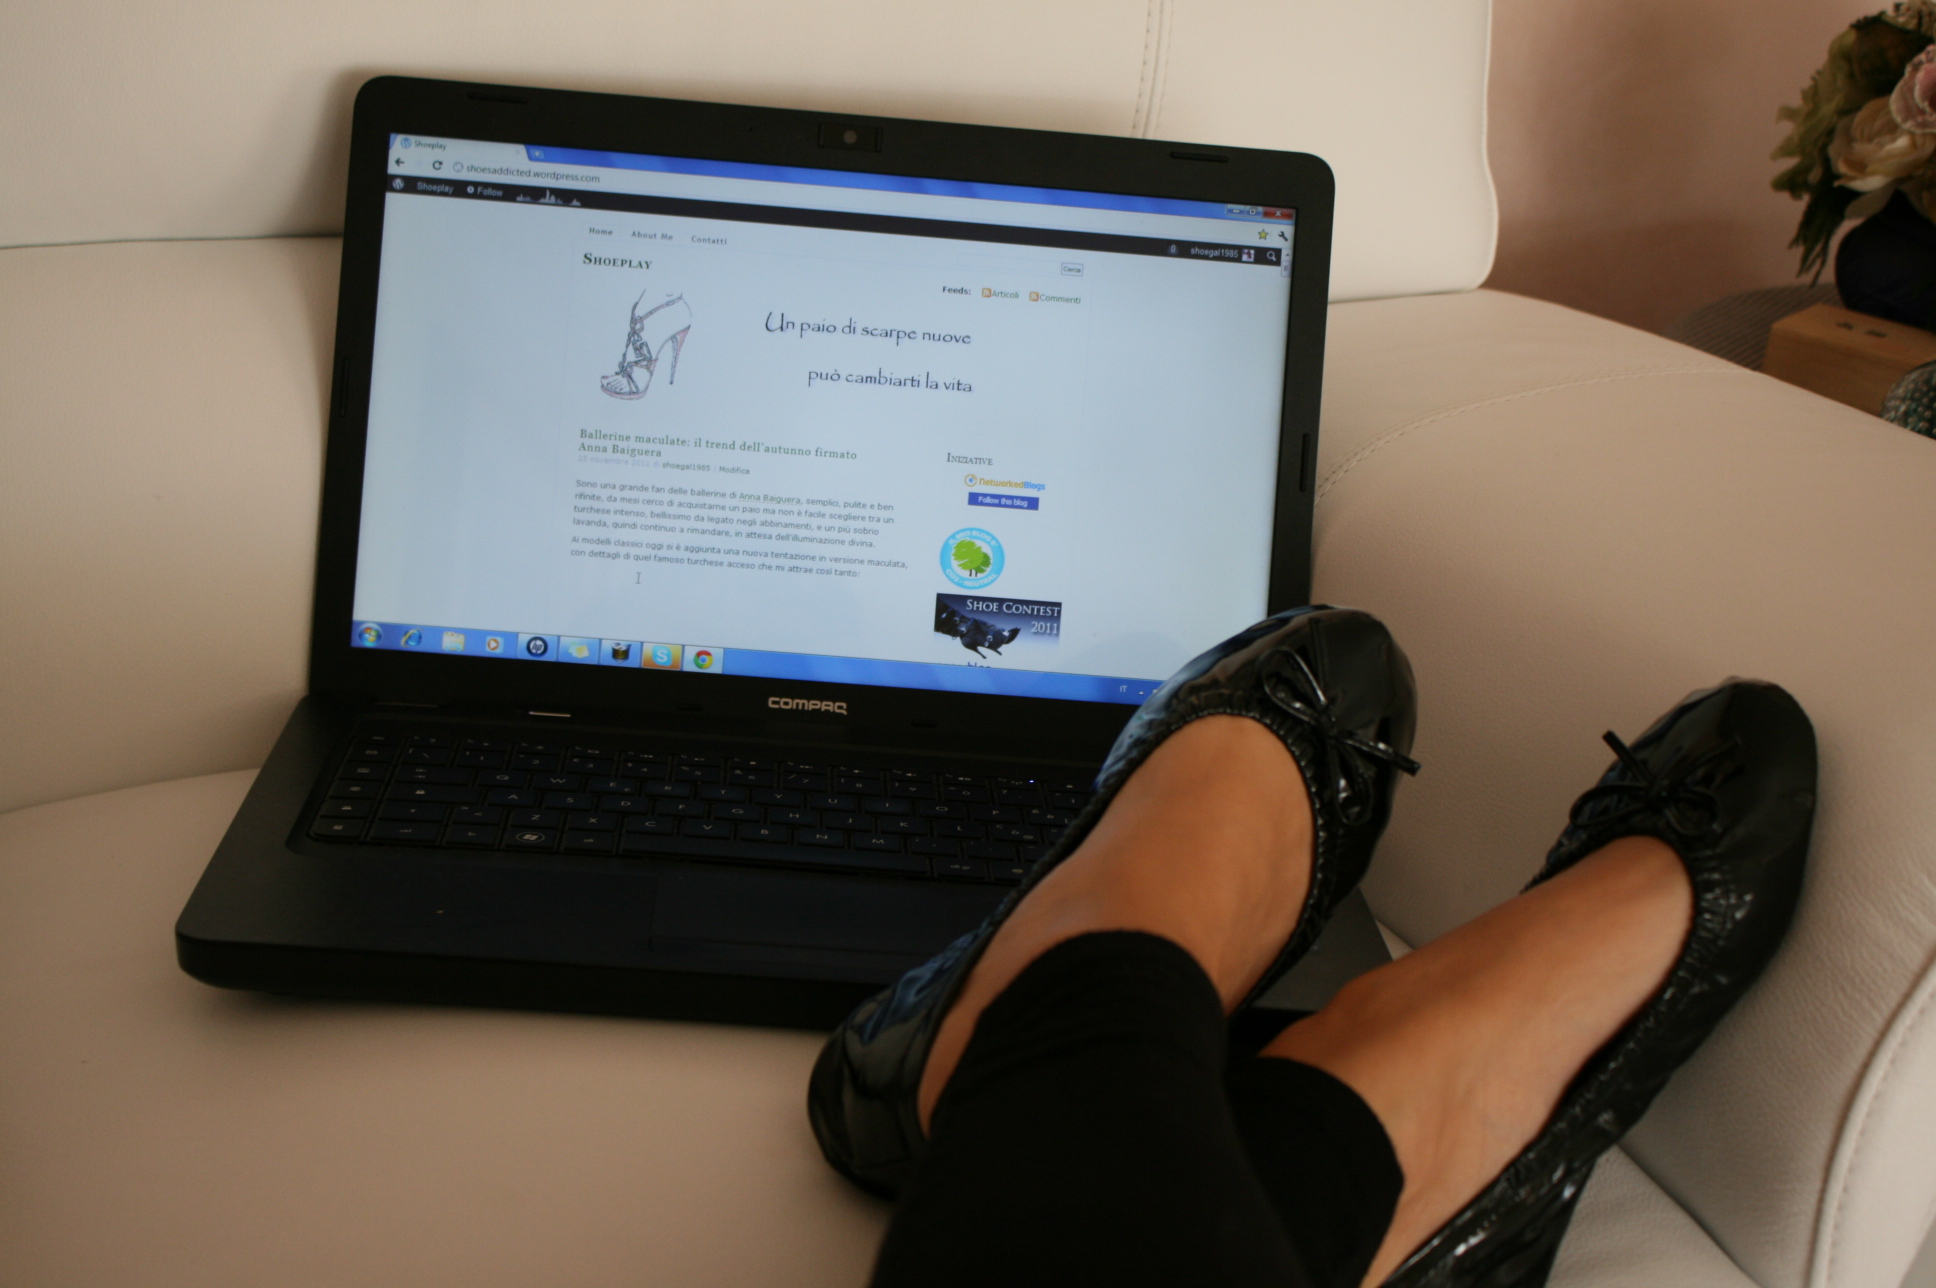 reputable site 64c3d 4a0db Anche Dr. Scholl cede alle ballerine pieghevoli - Shoeplay ...